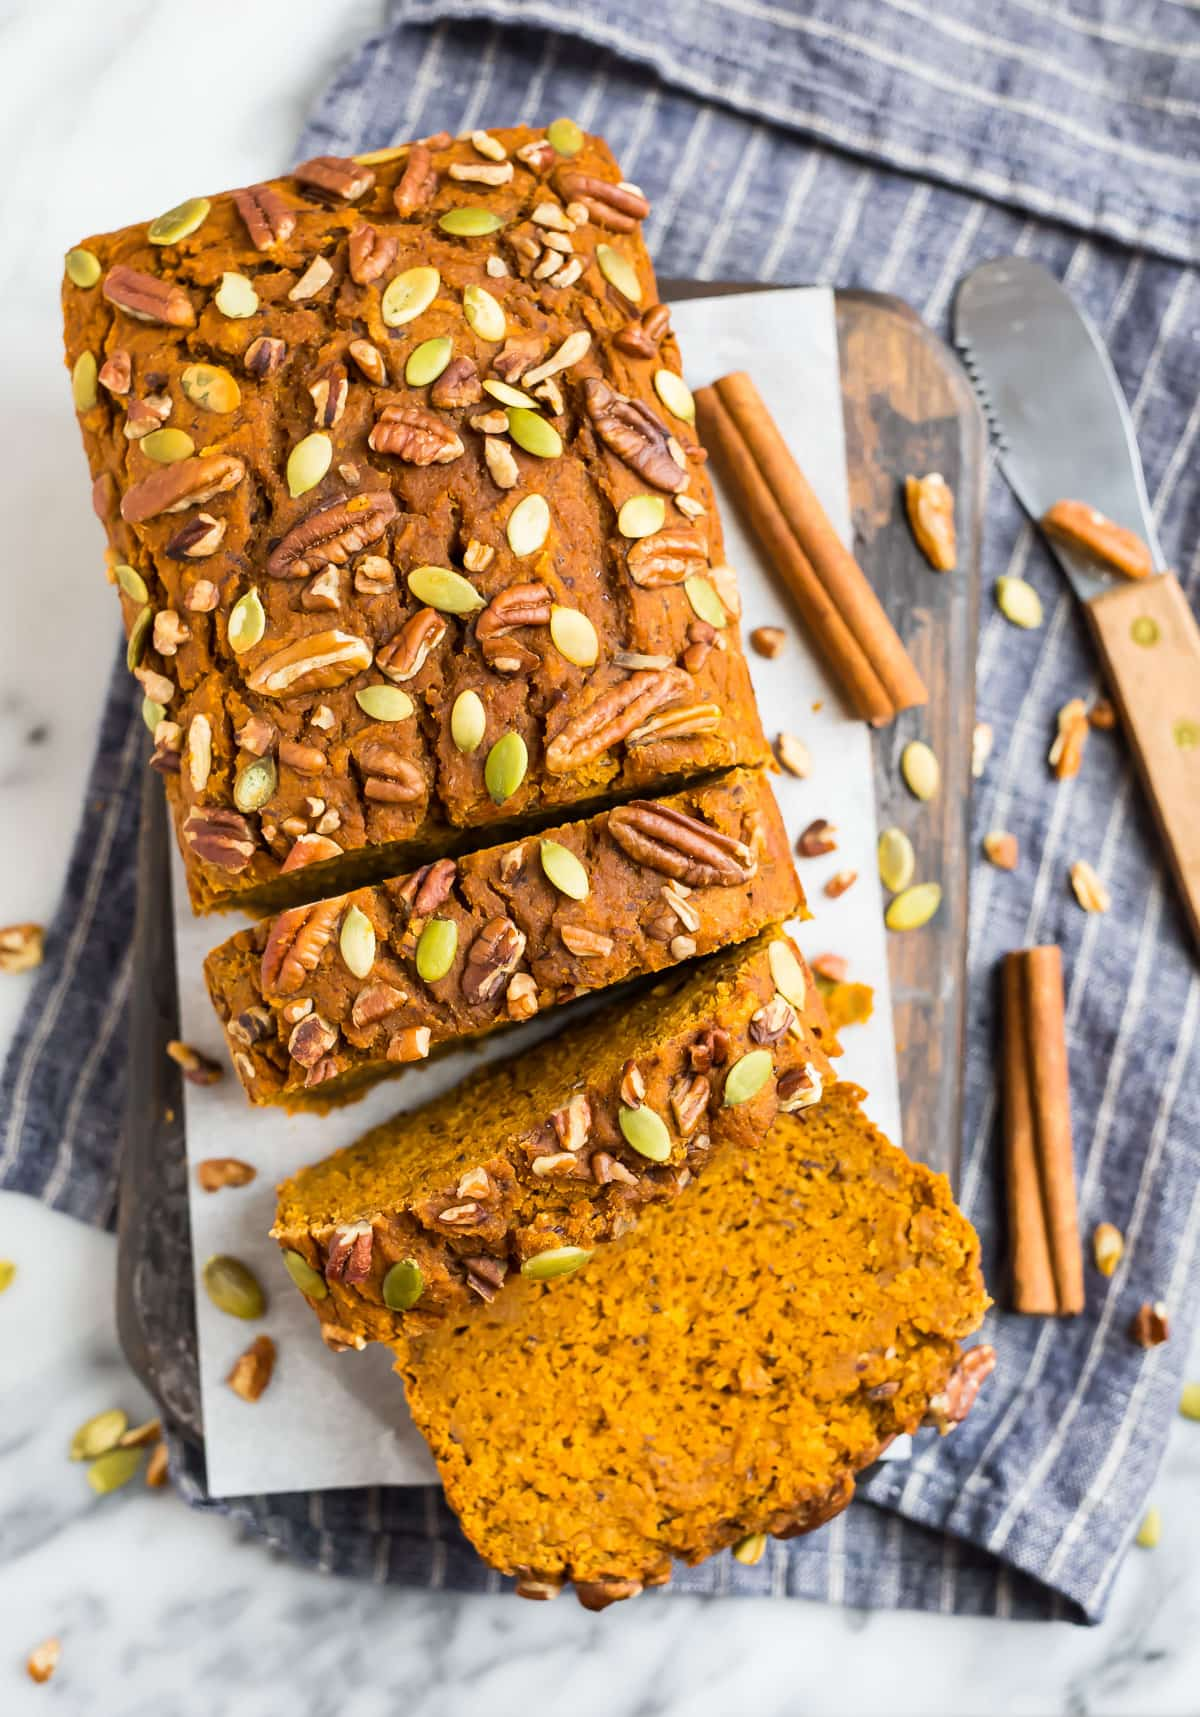 Vegan Pumpkin Bread No Oil Super Moist And Perfectly Spiced